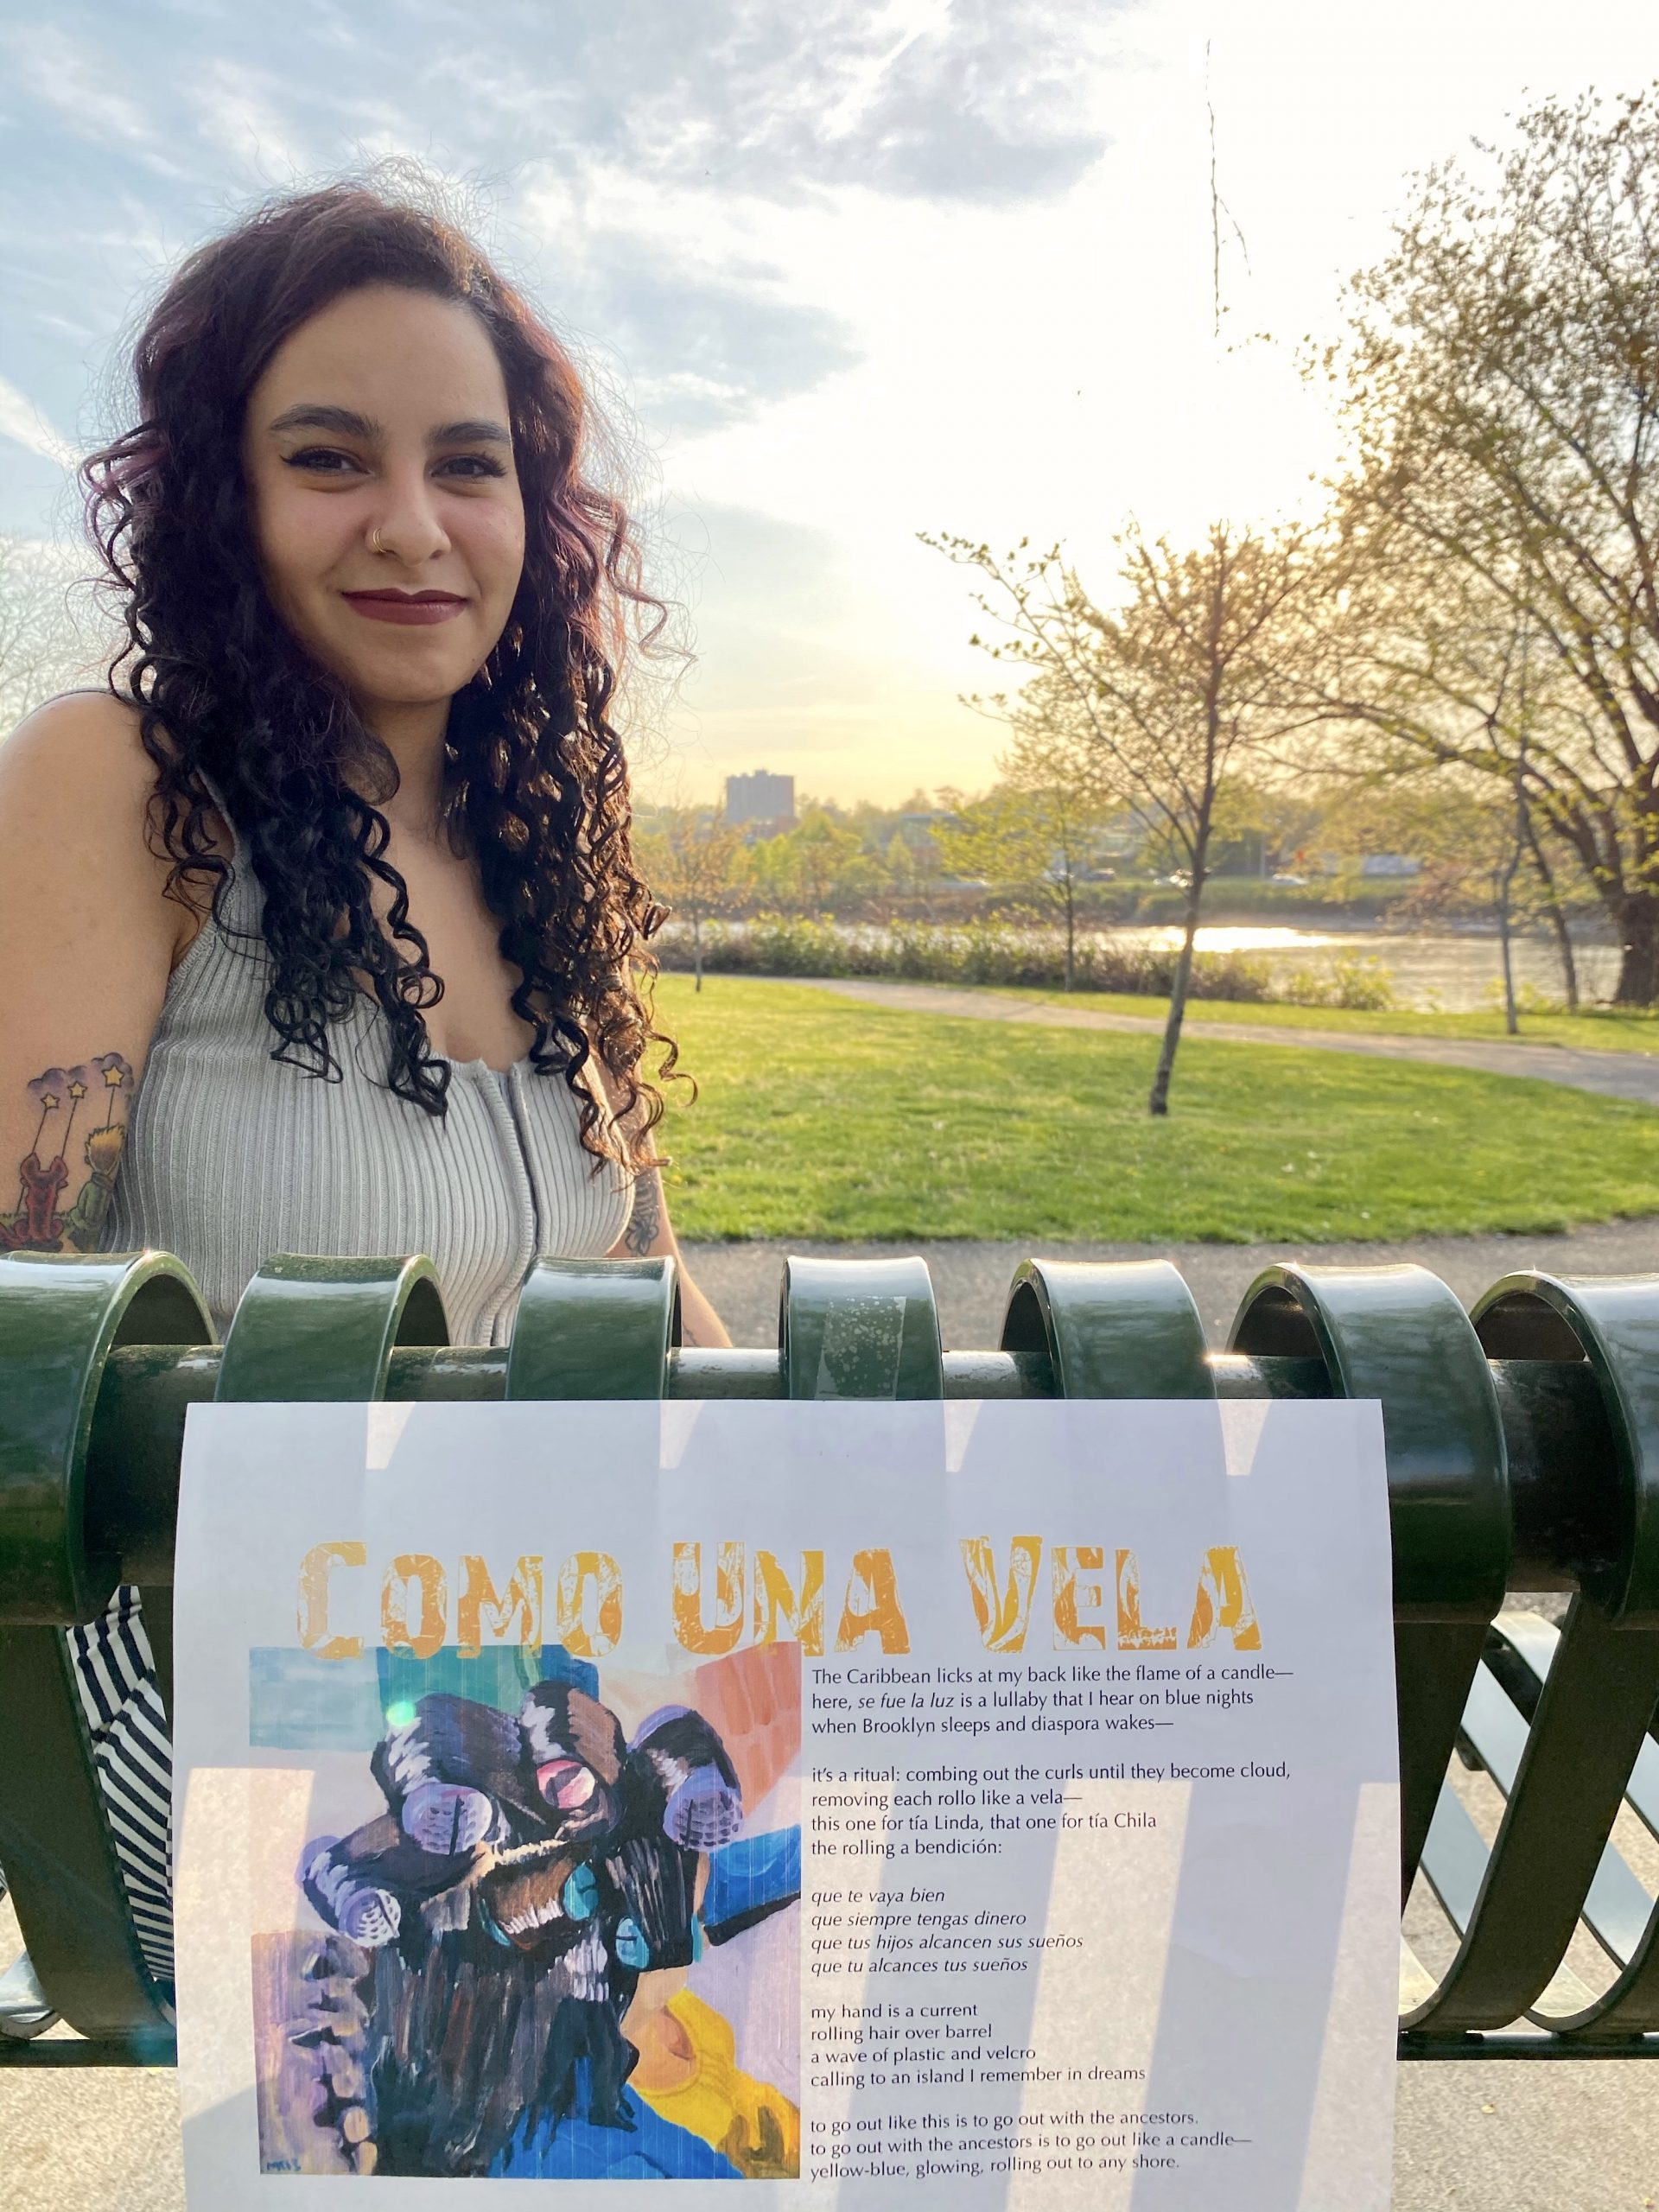 The poet Michelle Moncayo stands left and behind of her broadside with the grassy park in the background.